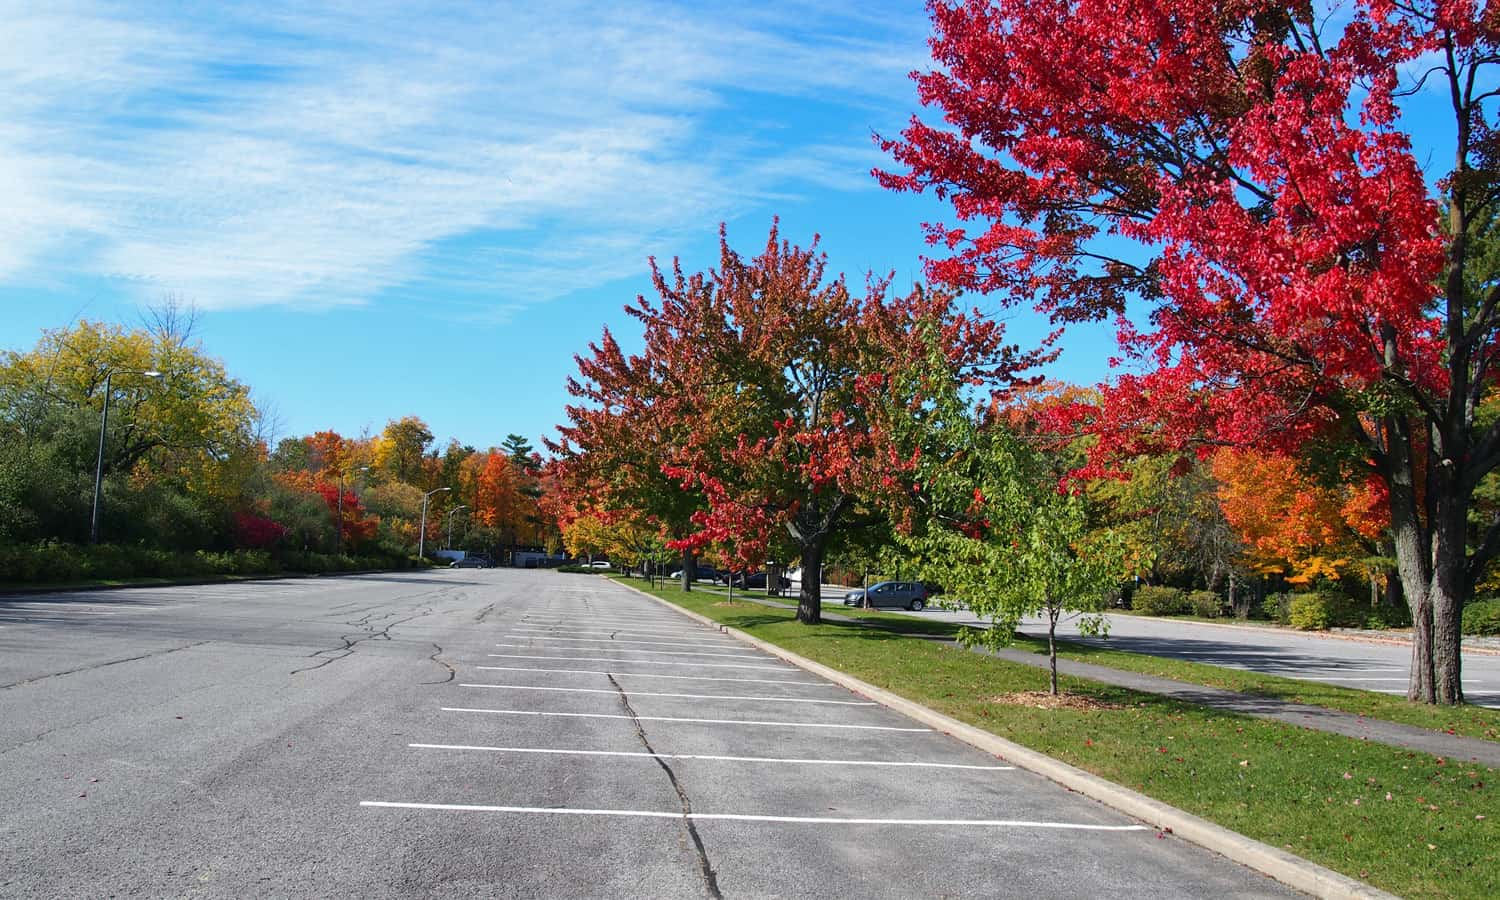 Elongated parking lot with a central row of trees